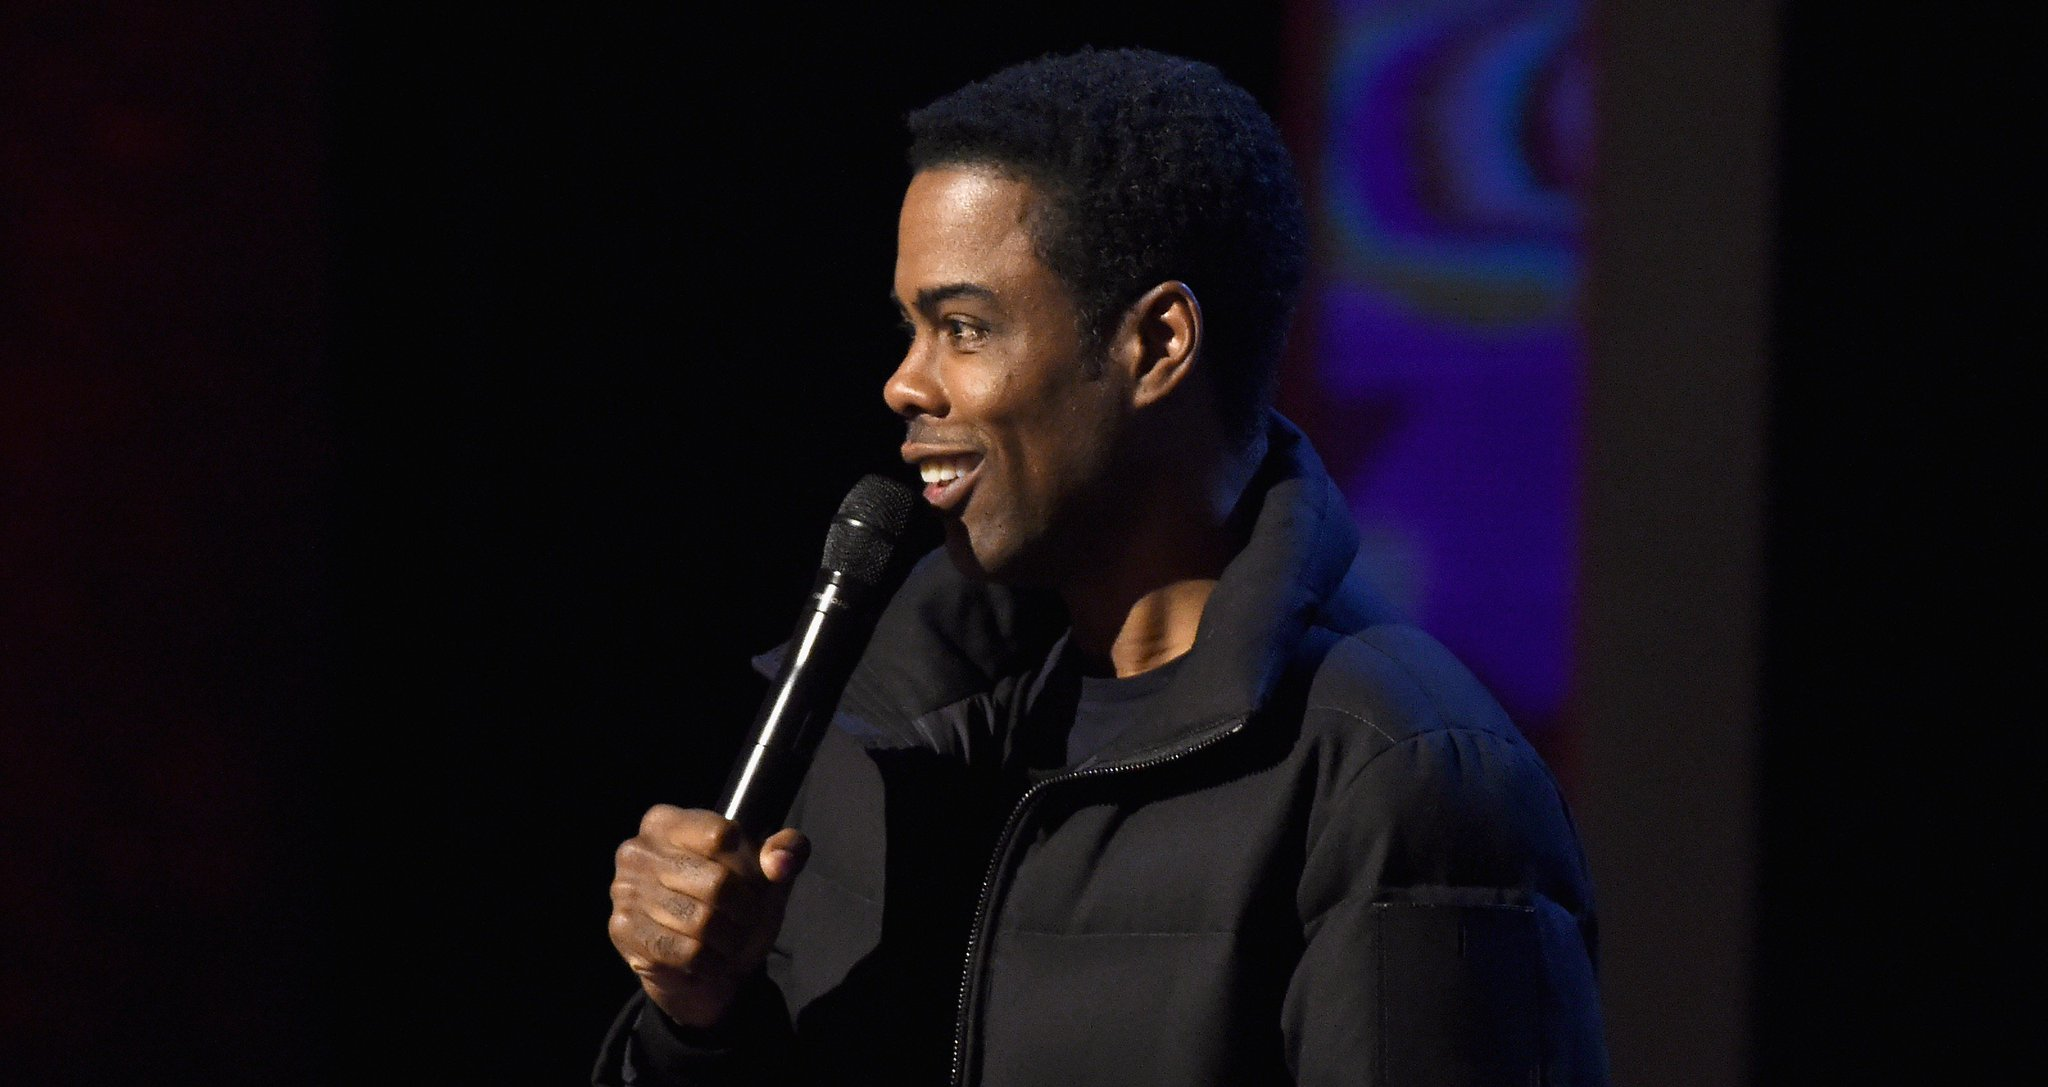 Happy birthday Chris Rock! Check out 10 of his best stand-up routines https://t.co/4Ufl2JiFxu https://t.co/umq1ch9KO2